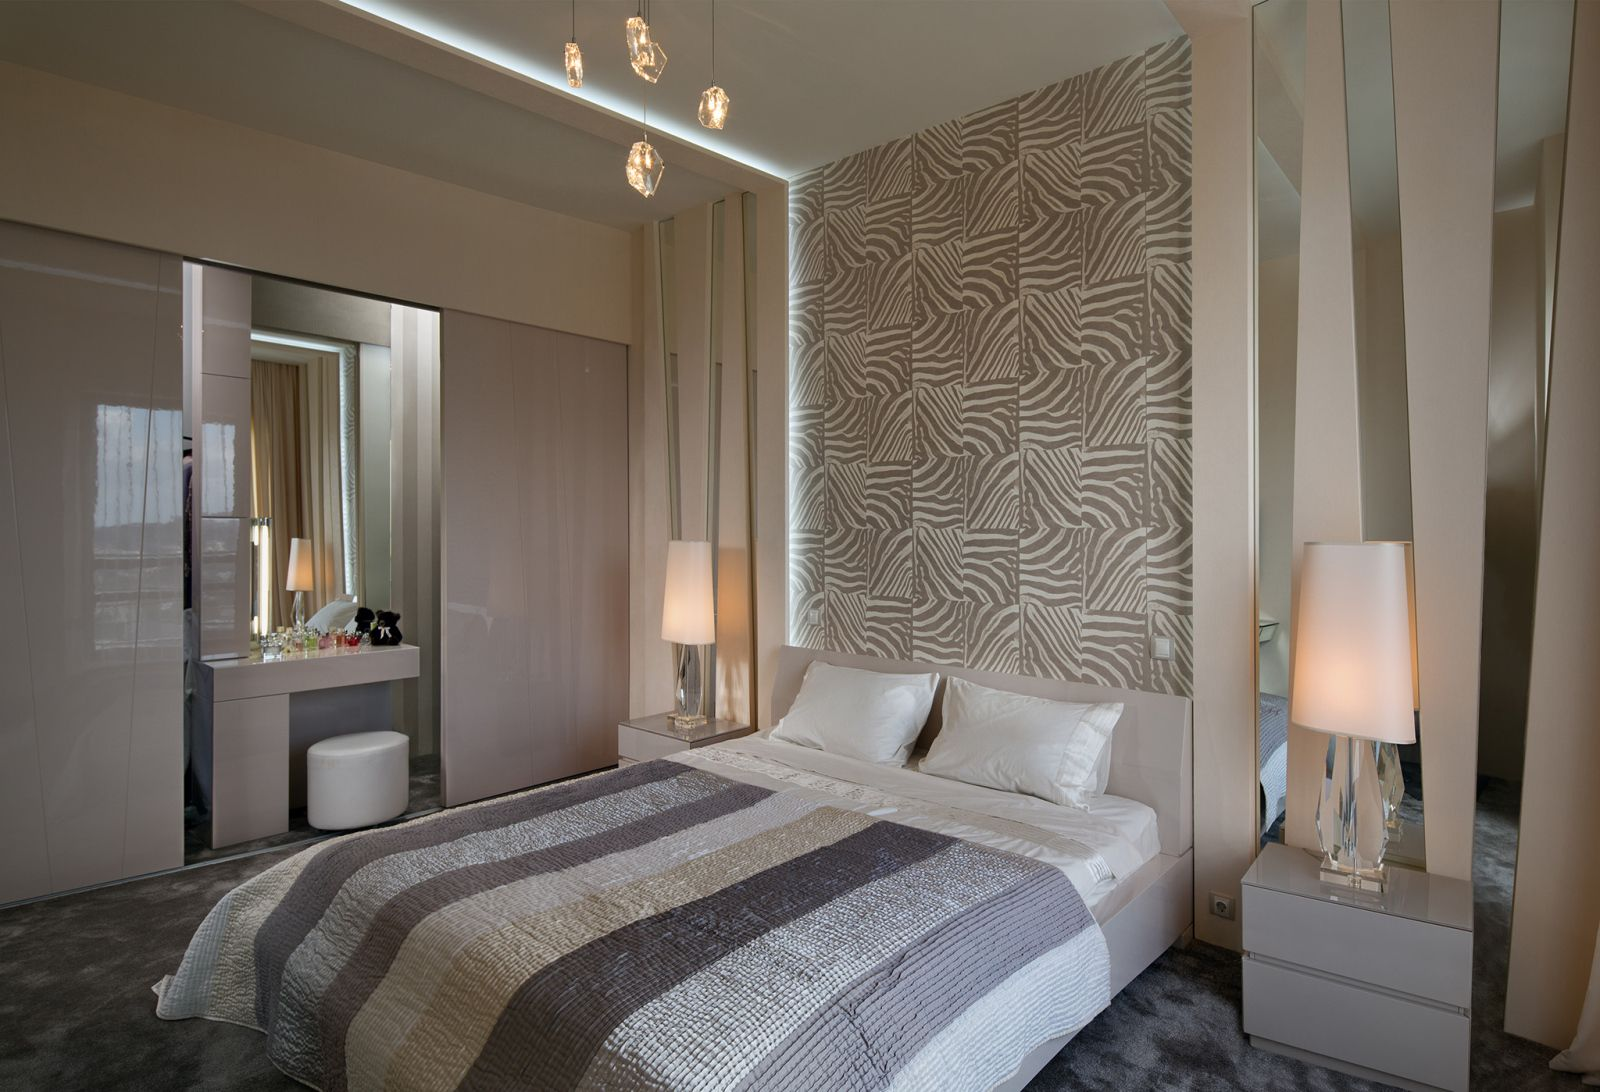 Interior Design Styles Combination in Modern Ukrainian Apartment. Bedroom with bedside tables and soft tiled headboard and boudoir